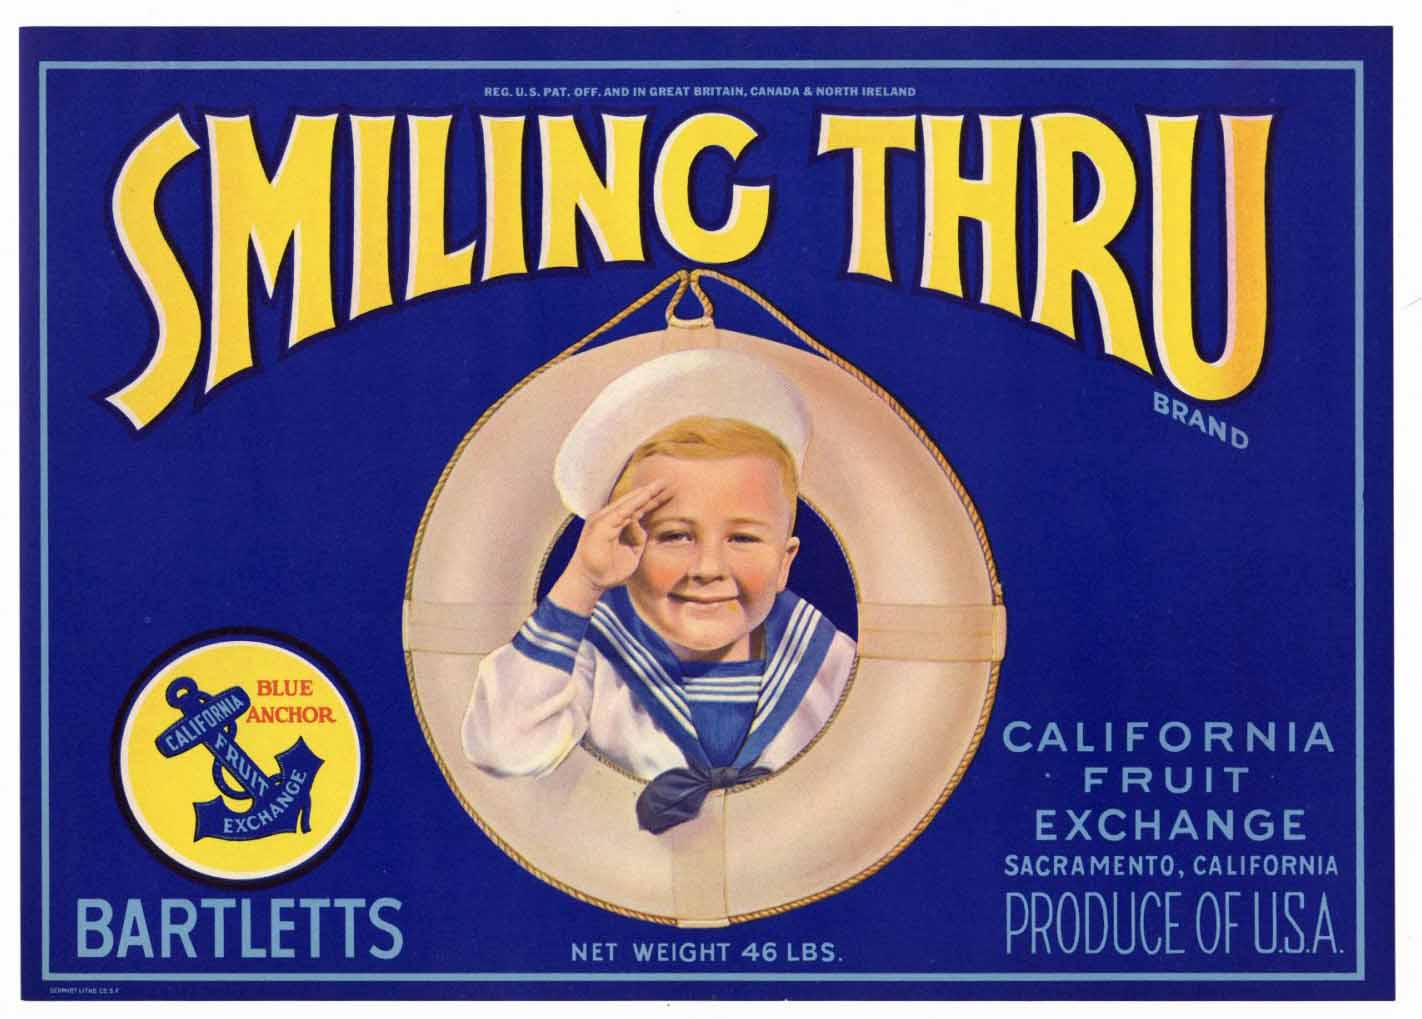 SMILING THRU Brand Vintage Pear Crate Label (P208)